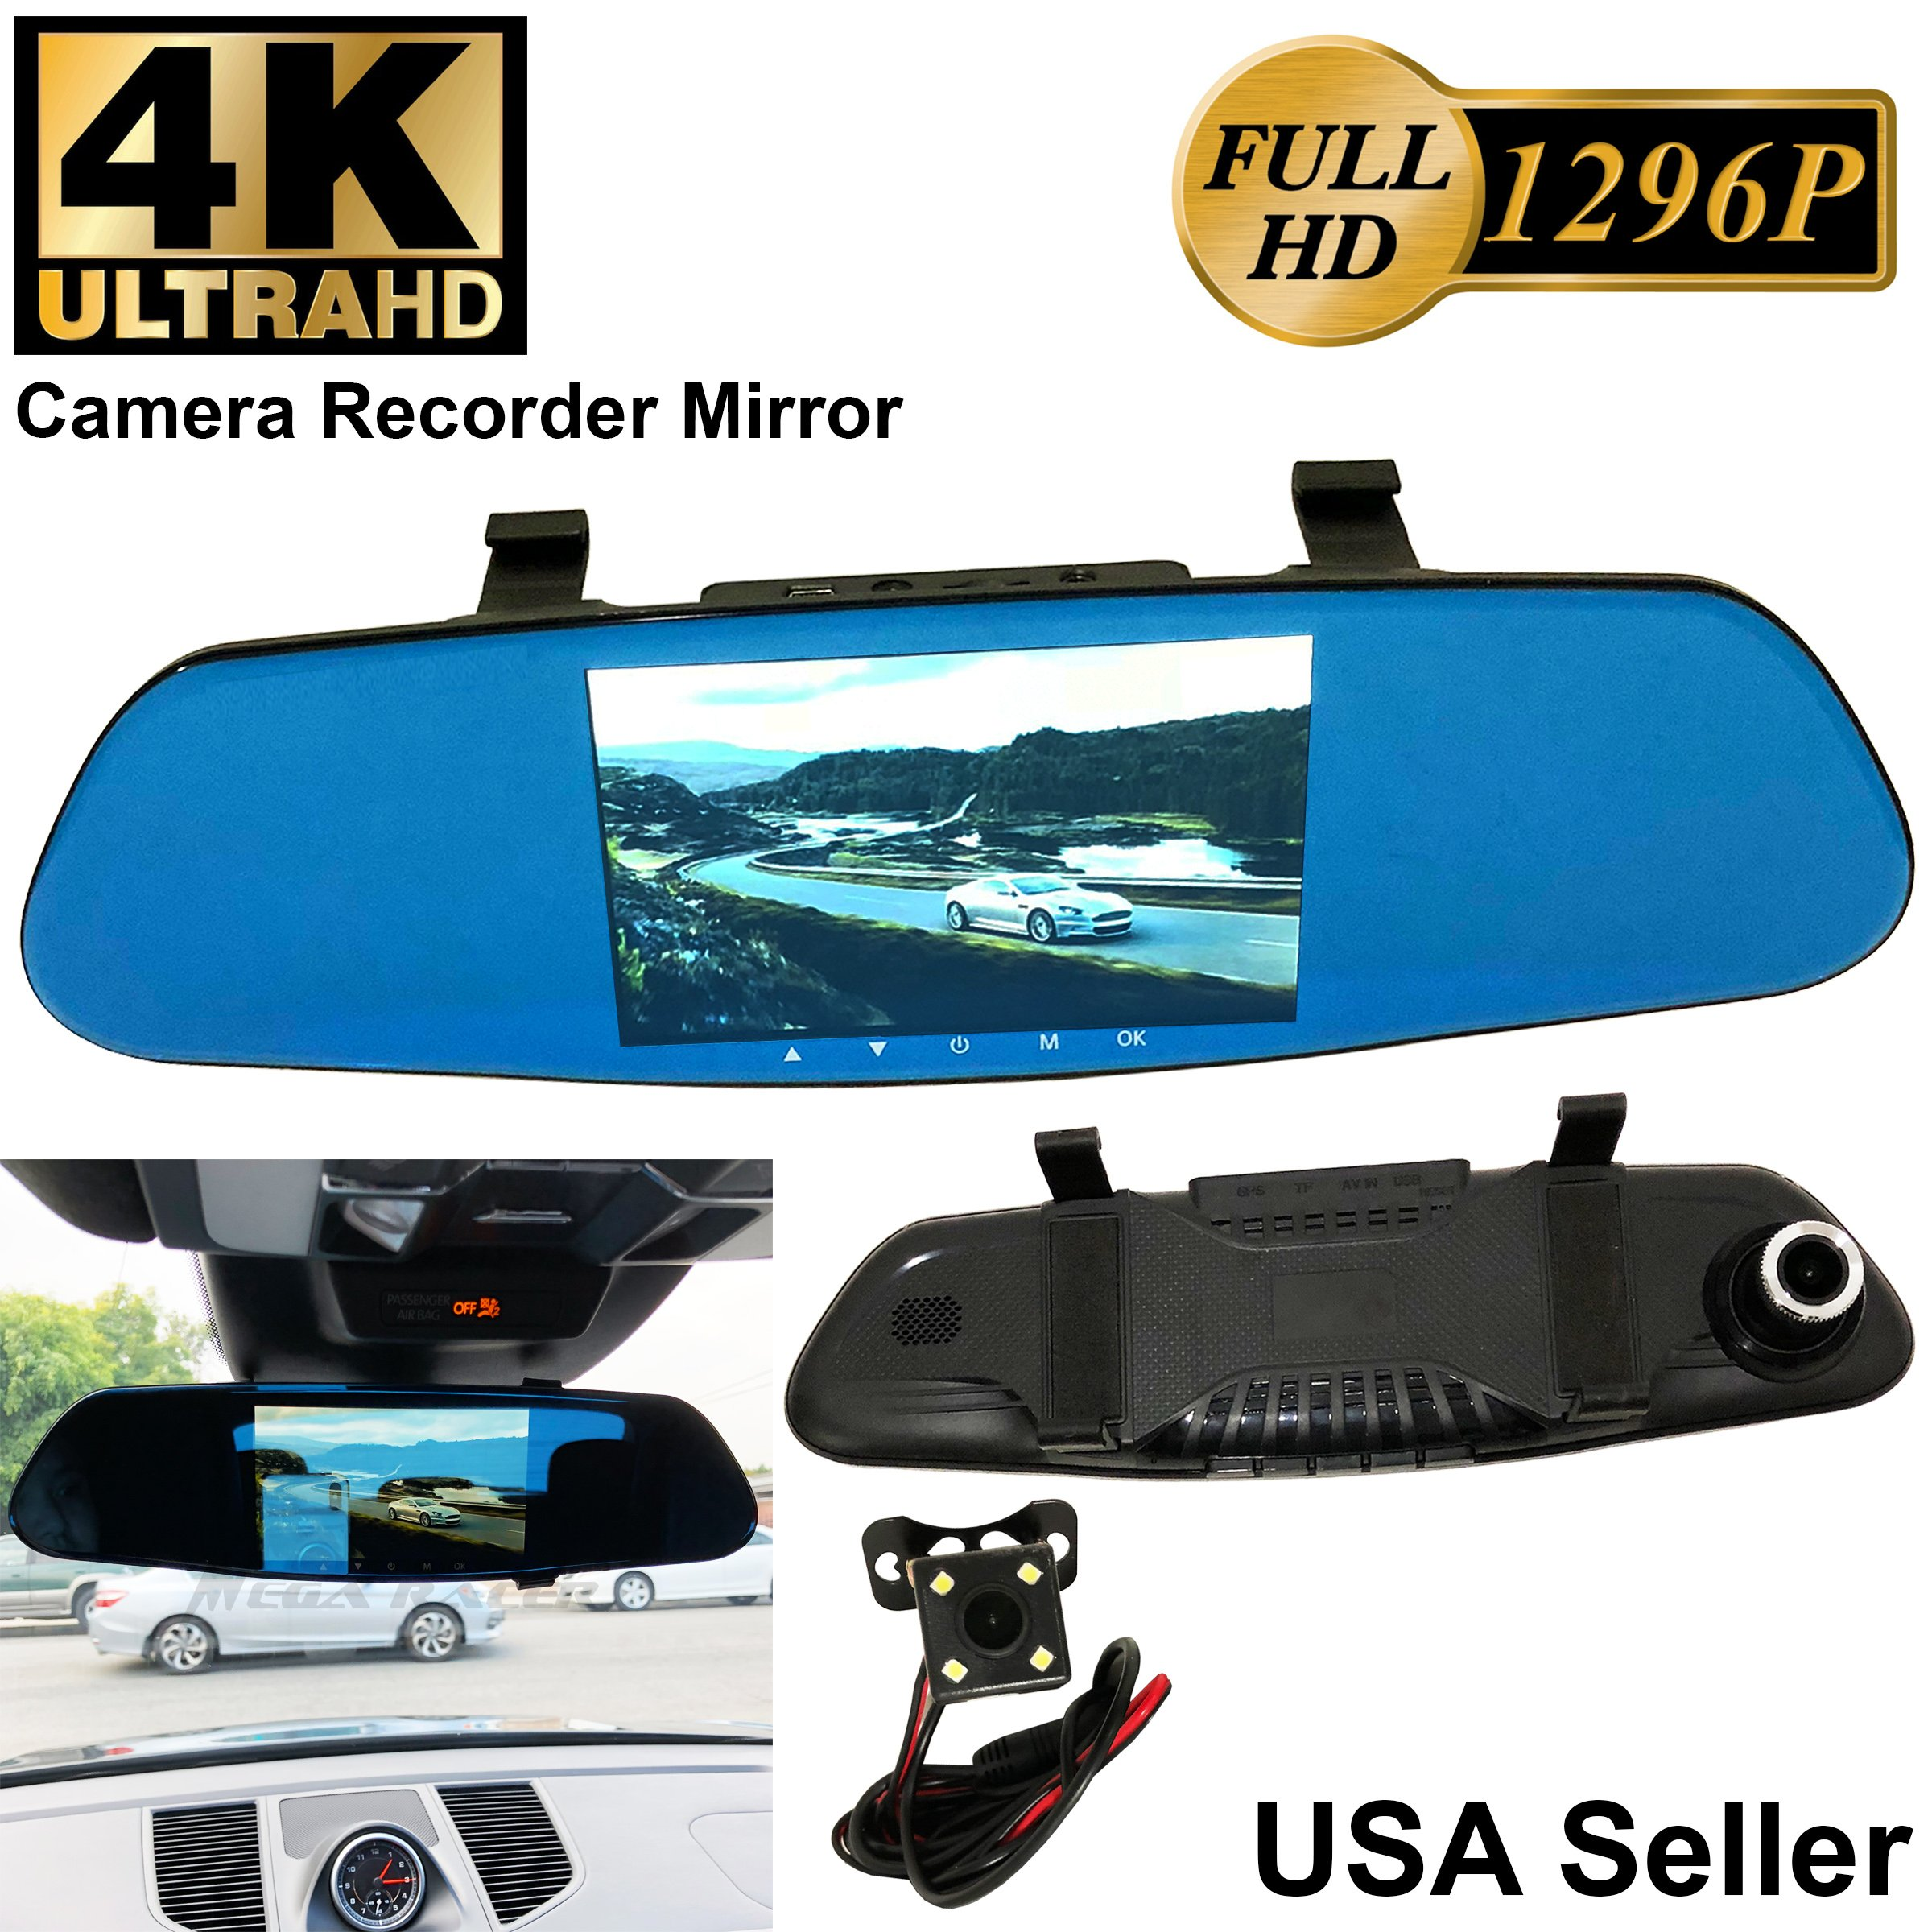 4K ULTRA 5 in 300mm 1296P Full HD Blue Tint Front/Back Up Reverse Rear Camera Video Recorder Rearview Rear-View Mirror